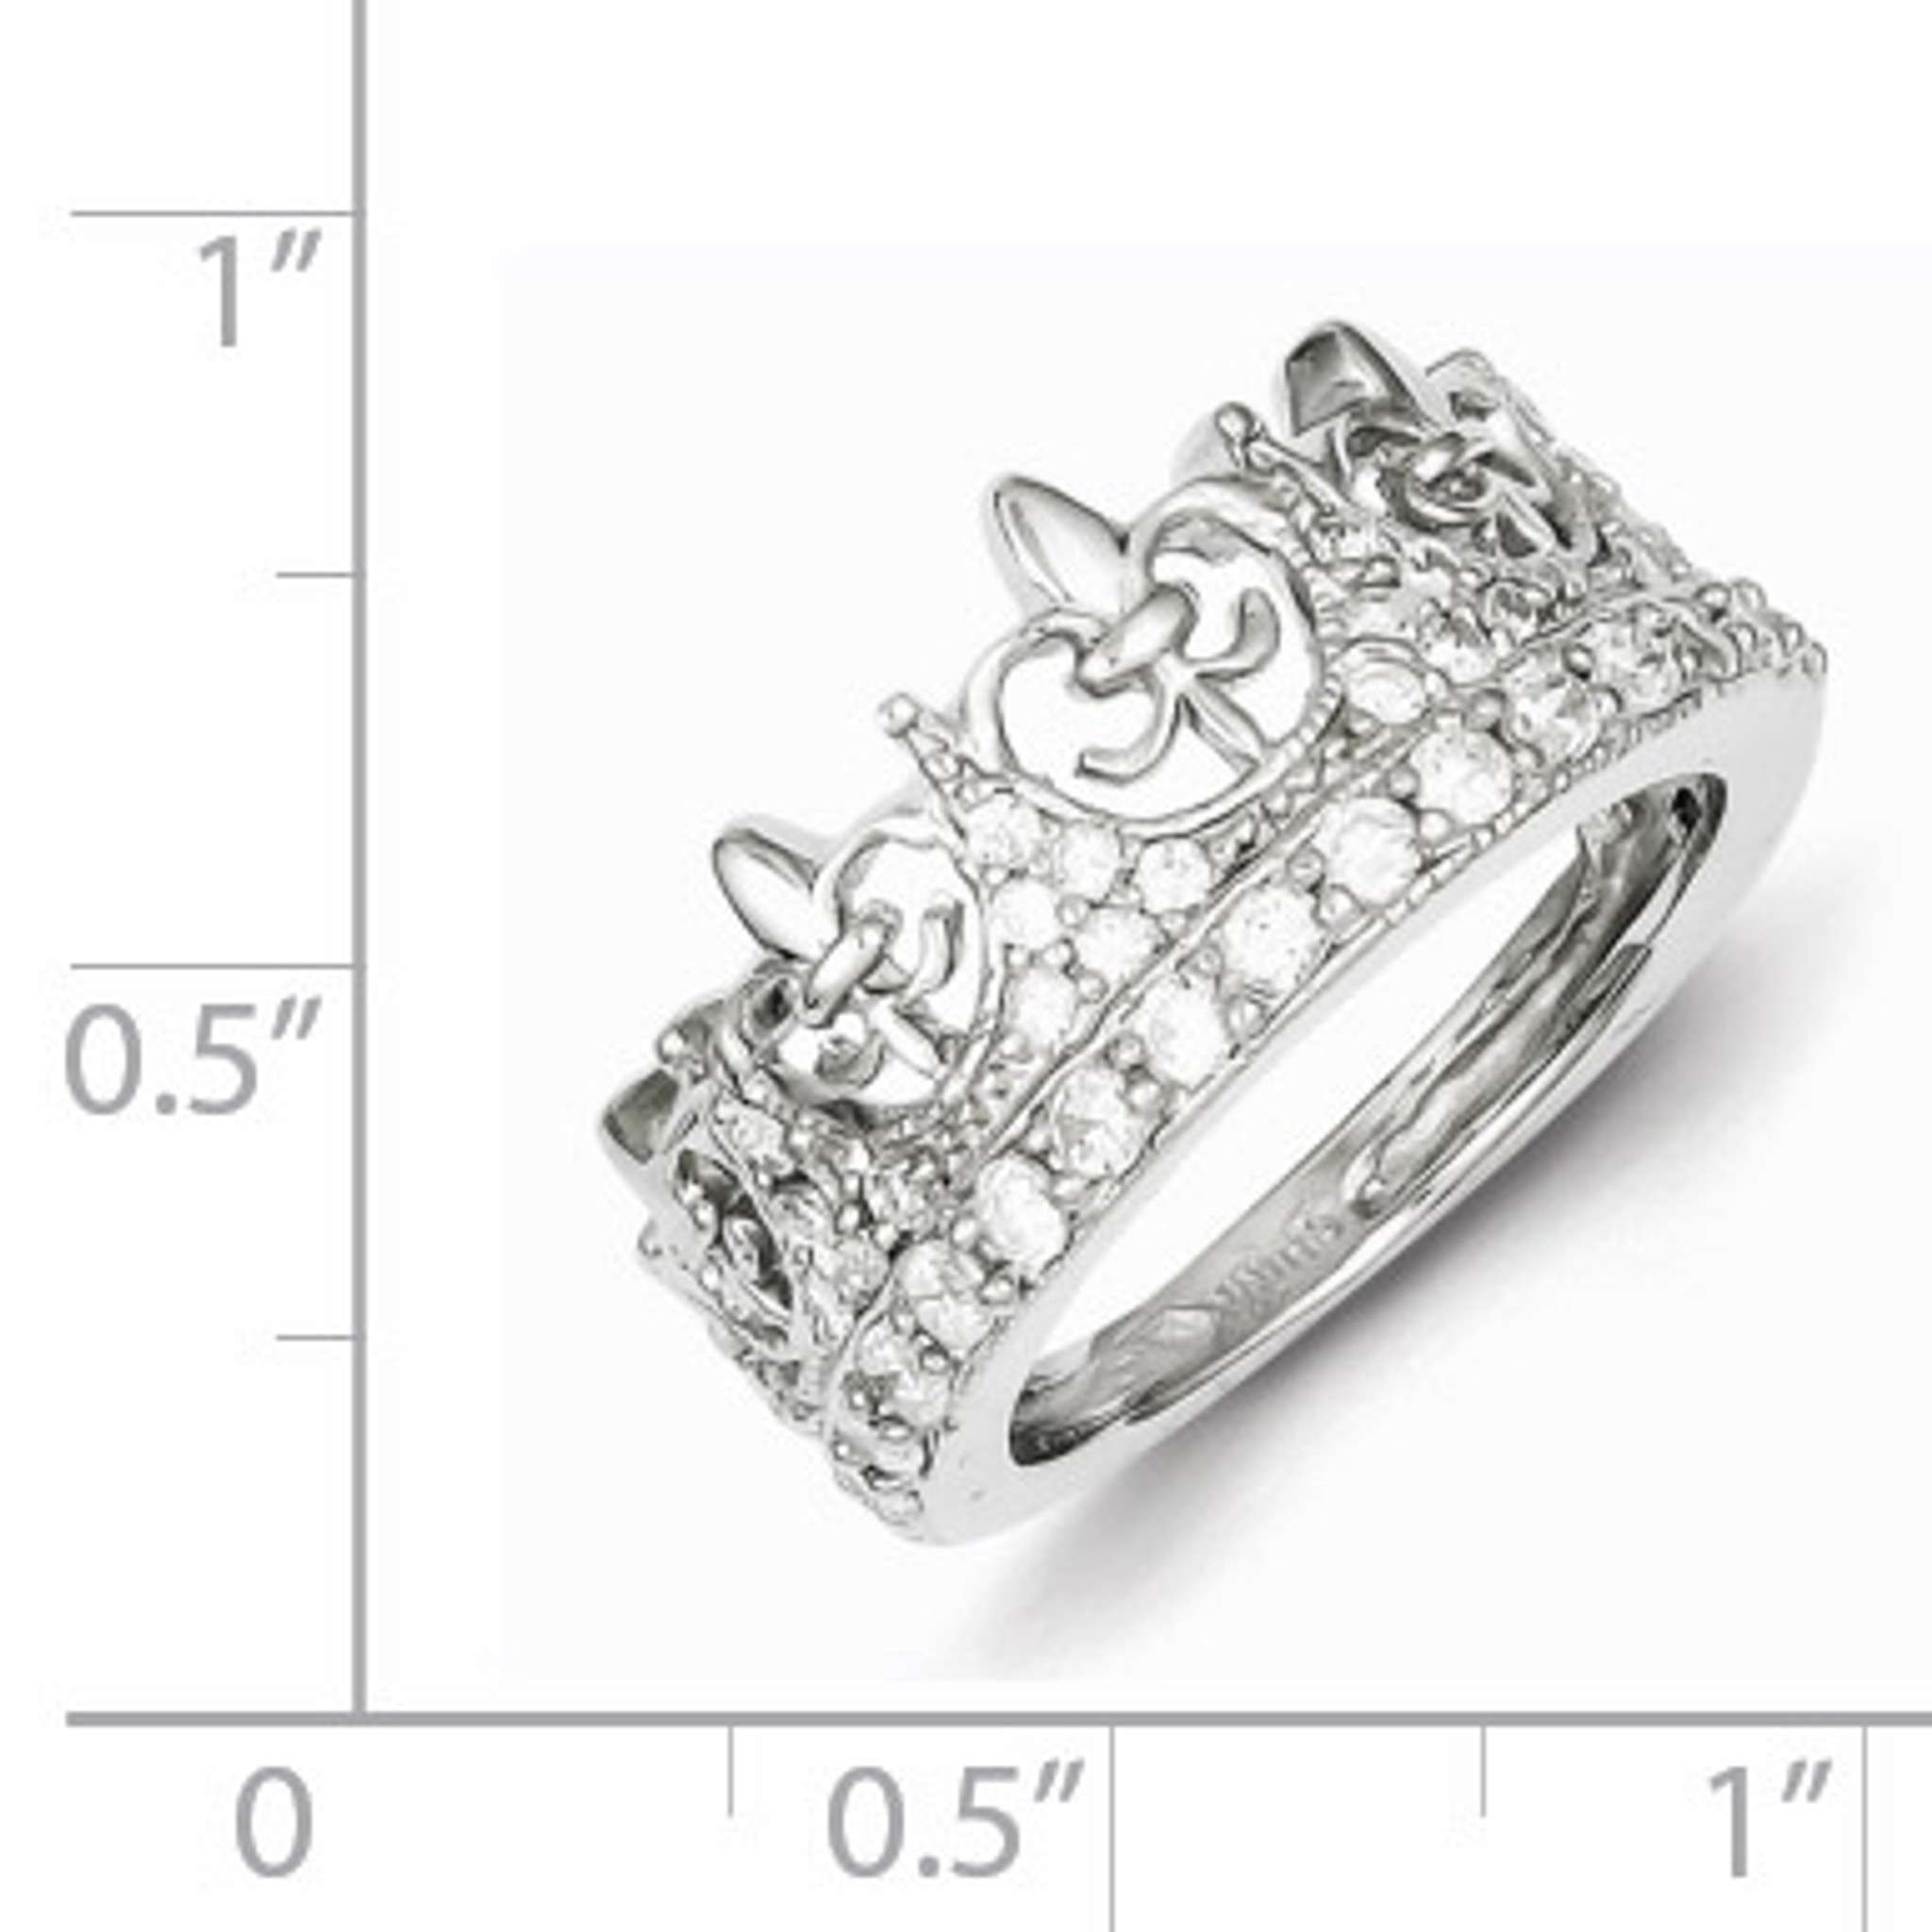 Clear Cubic Zirconia Fleur De Lis Ring Rhodium Plated Sterling Silver